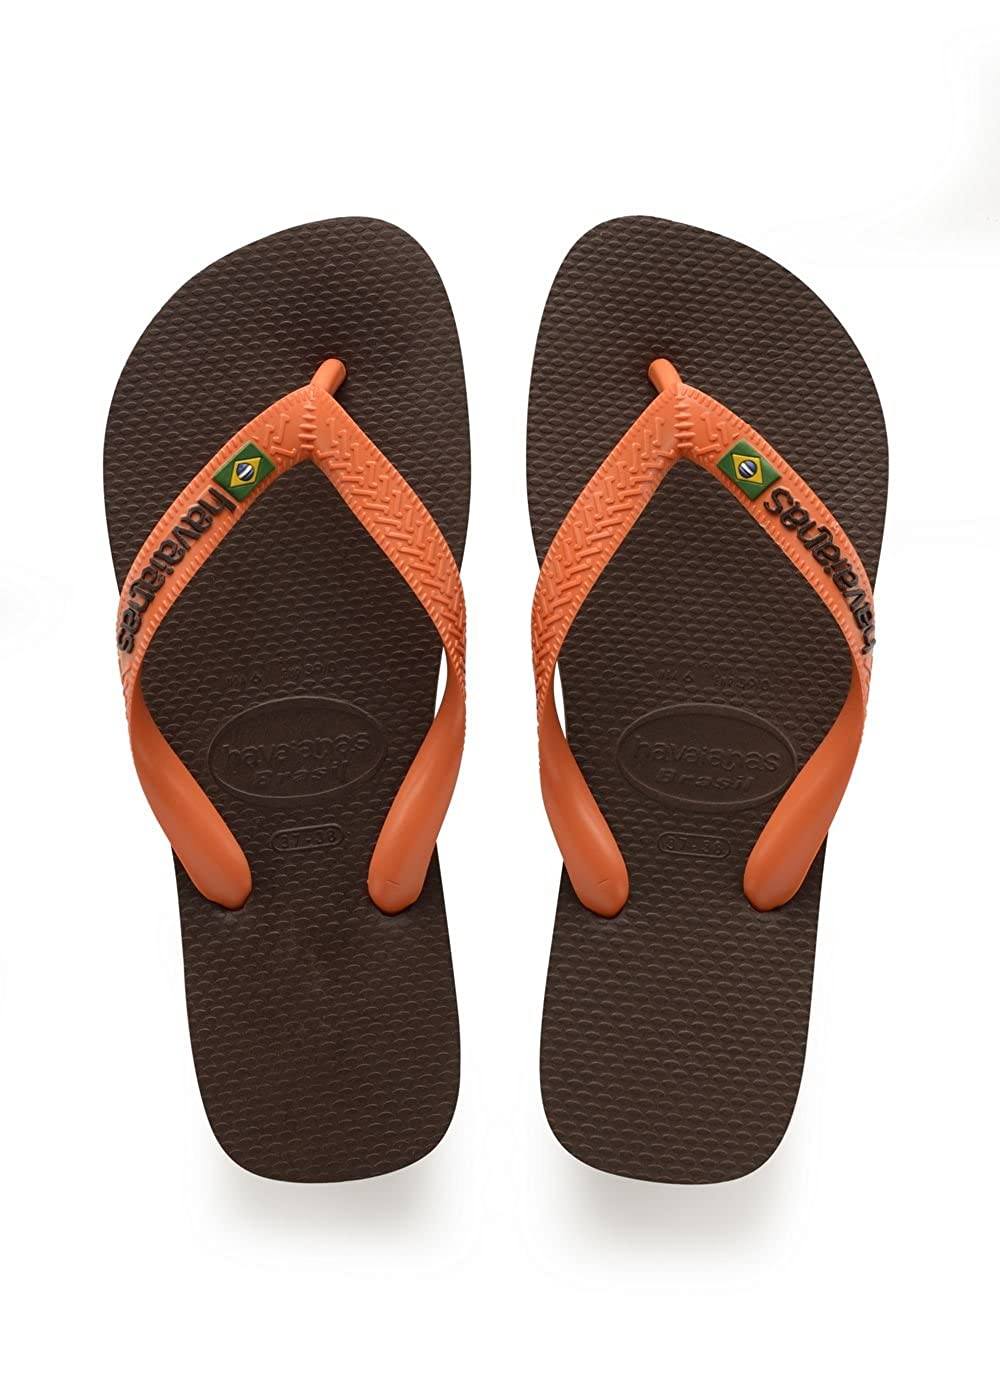 Havaianas Brasil Logo, Chanclas Unisex Adulto, Marrón (Dark Brown/Orange), 37/38 EU [35/36 Brazilian]